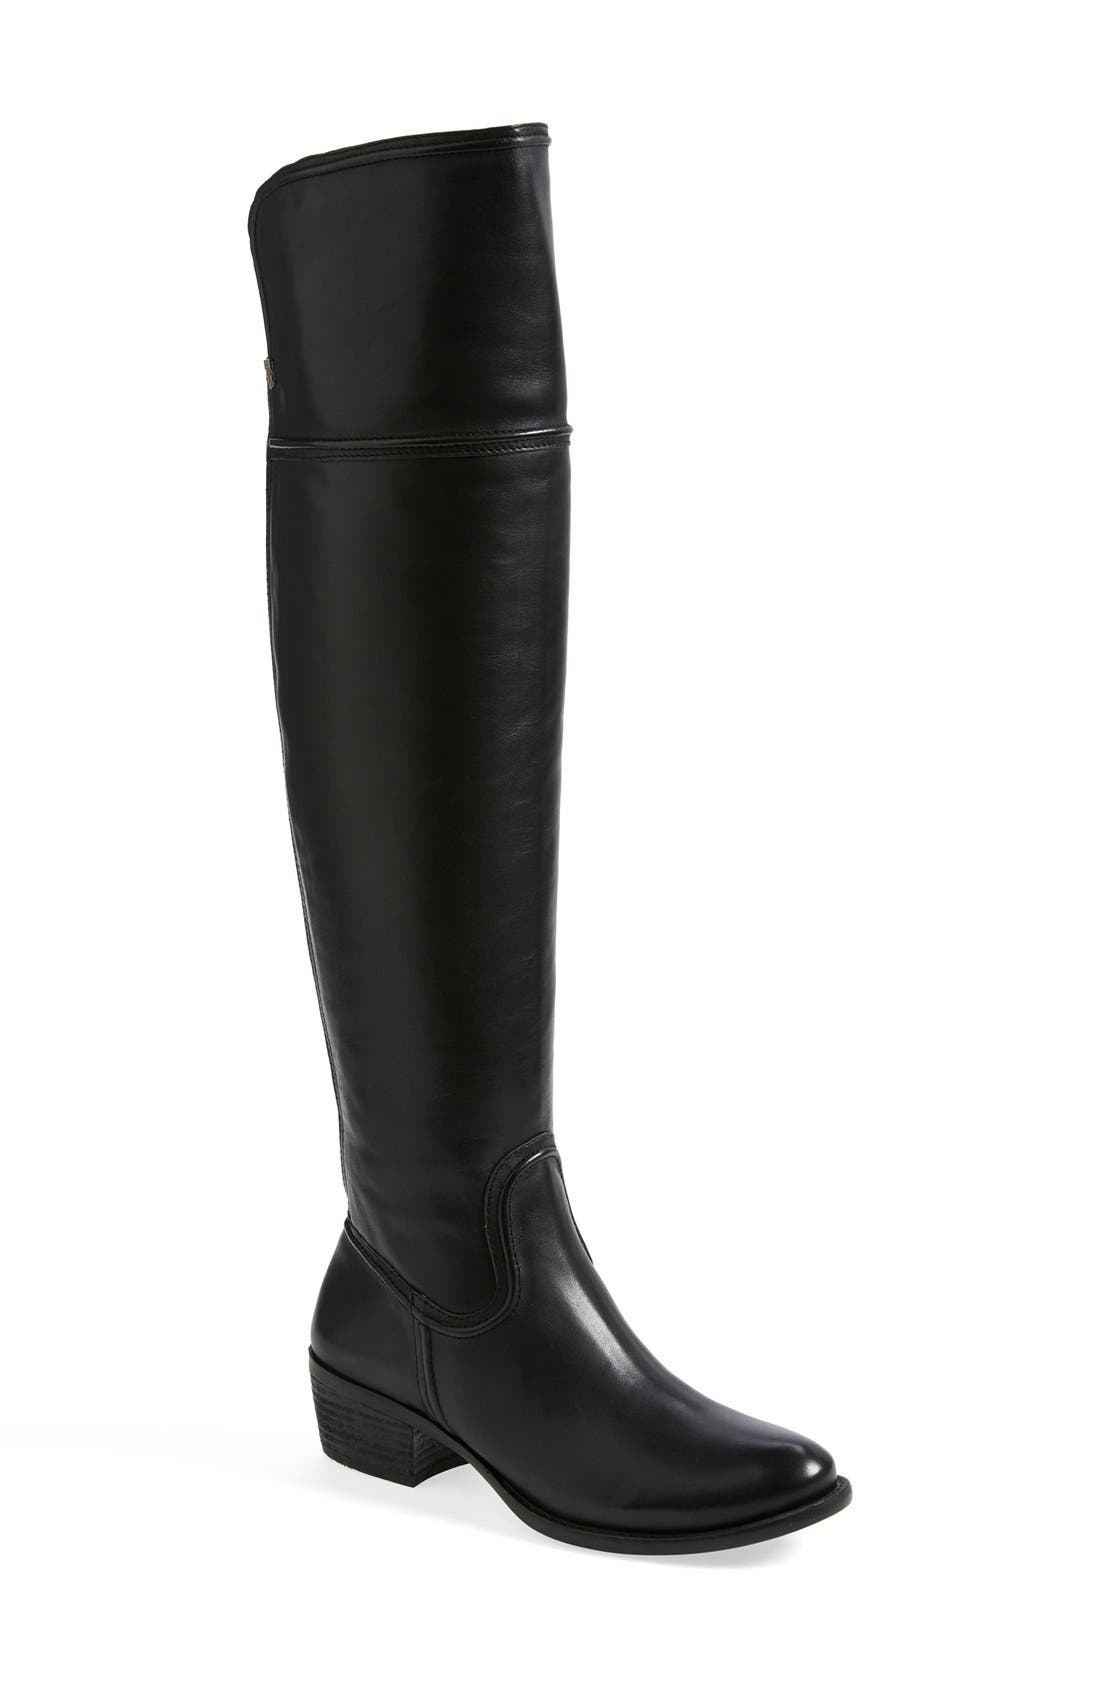 Alternate Image 1 Selected - Vince Camuto 'Baldwin' Over the Knee Leather Boot (Wide Calf) (Nordstrom Exclusive) (Women)